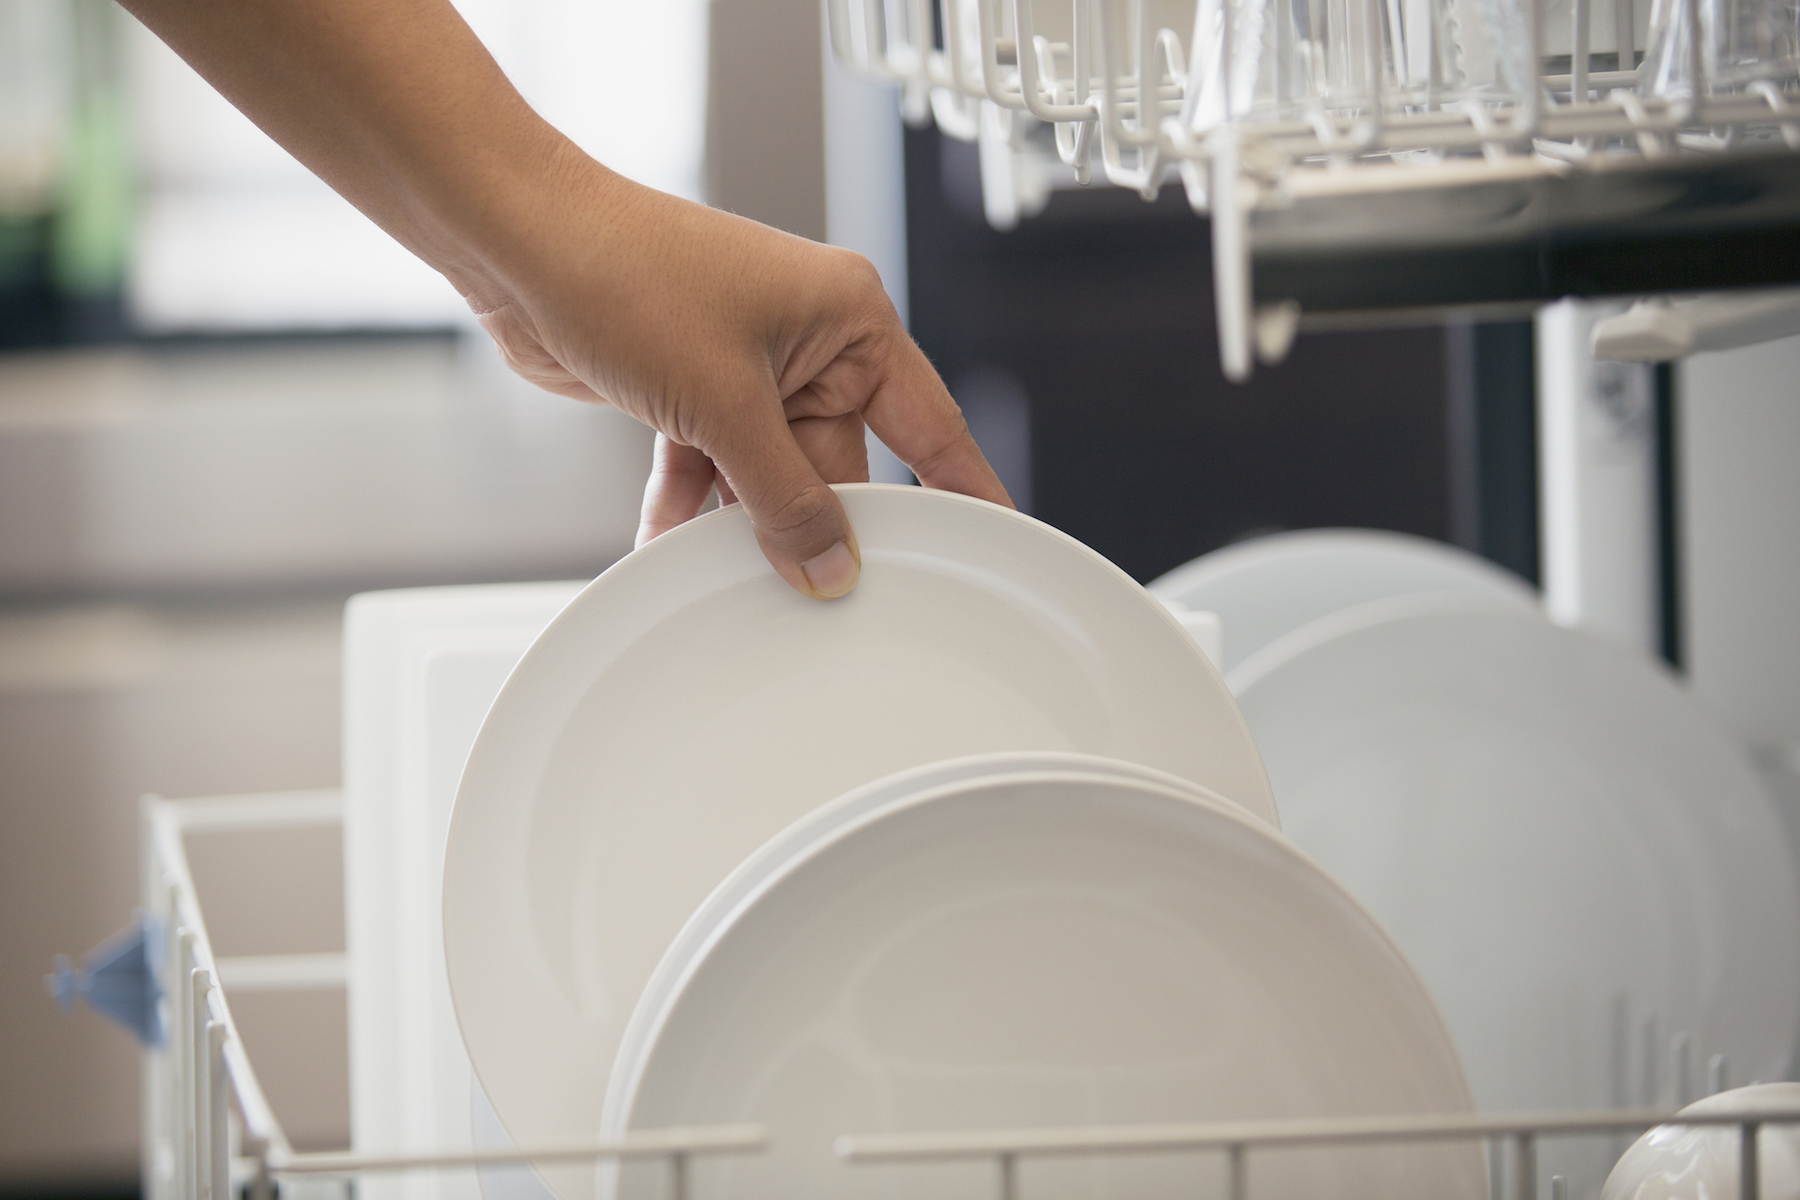 How to Fix a Smelly Dishwasher